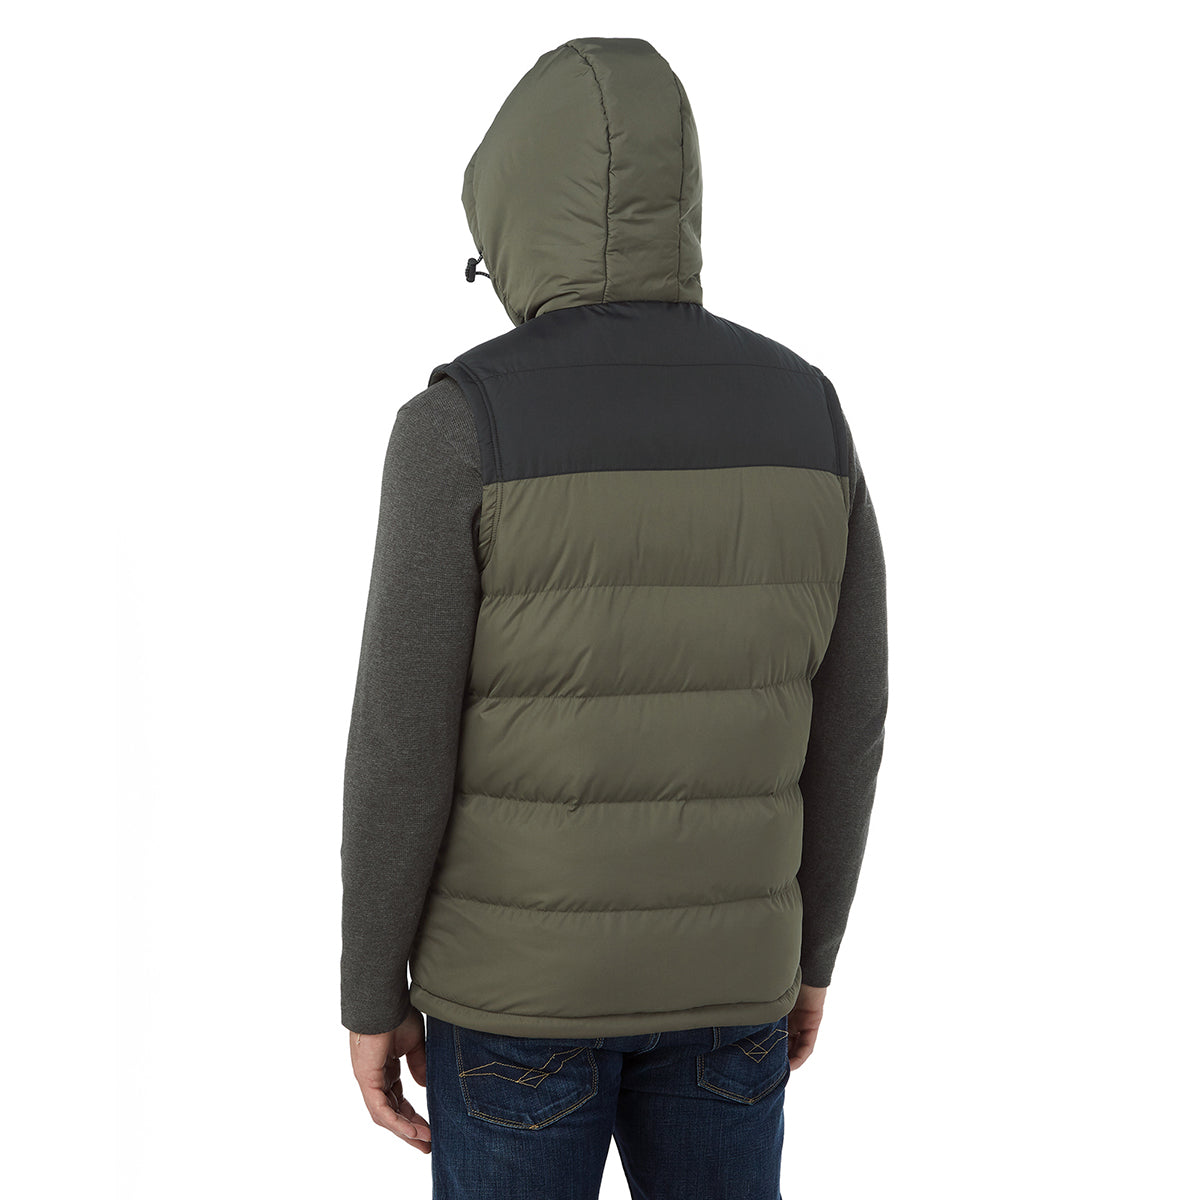 Worth Mens TCZ Thermal Gilet - Dark Khaki/Black image 4